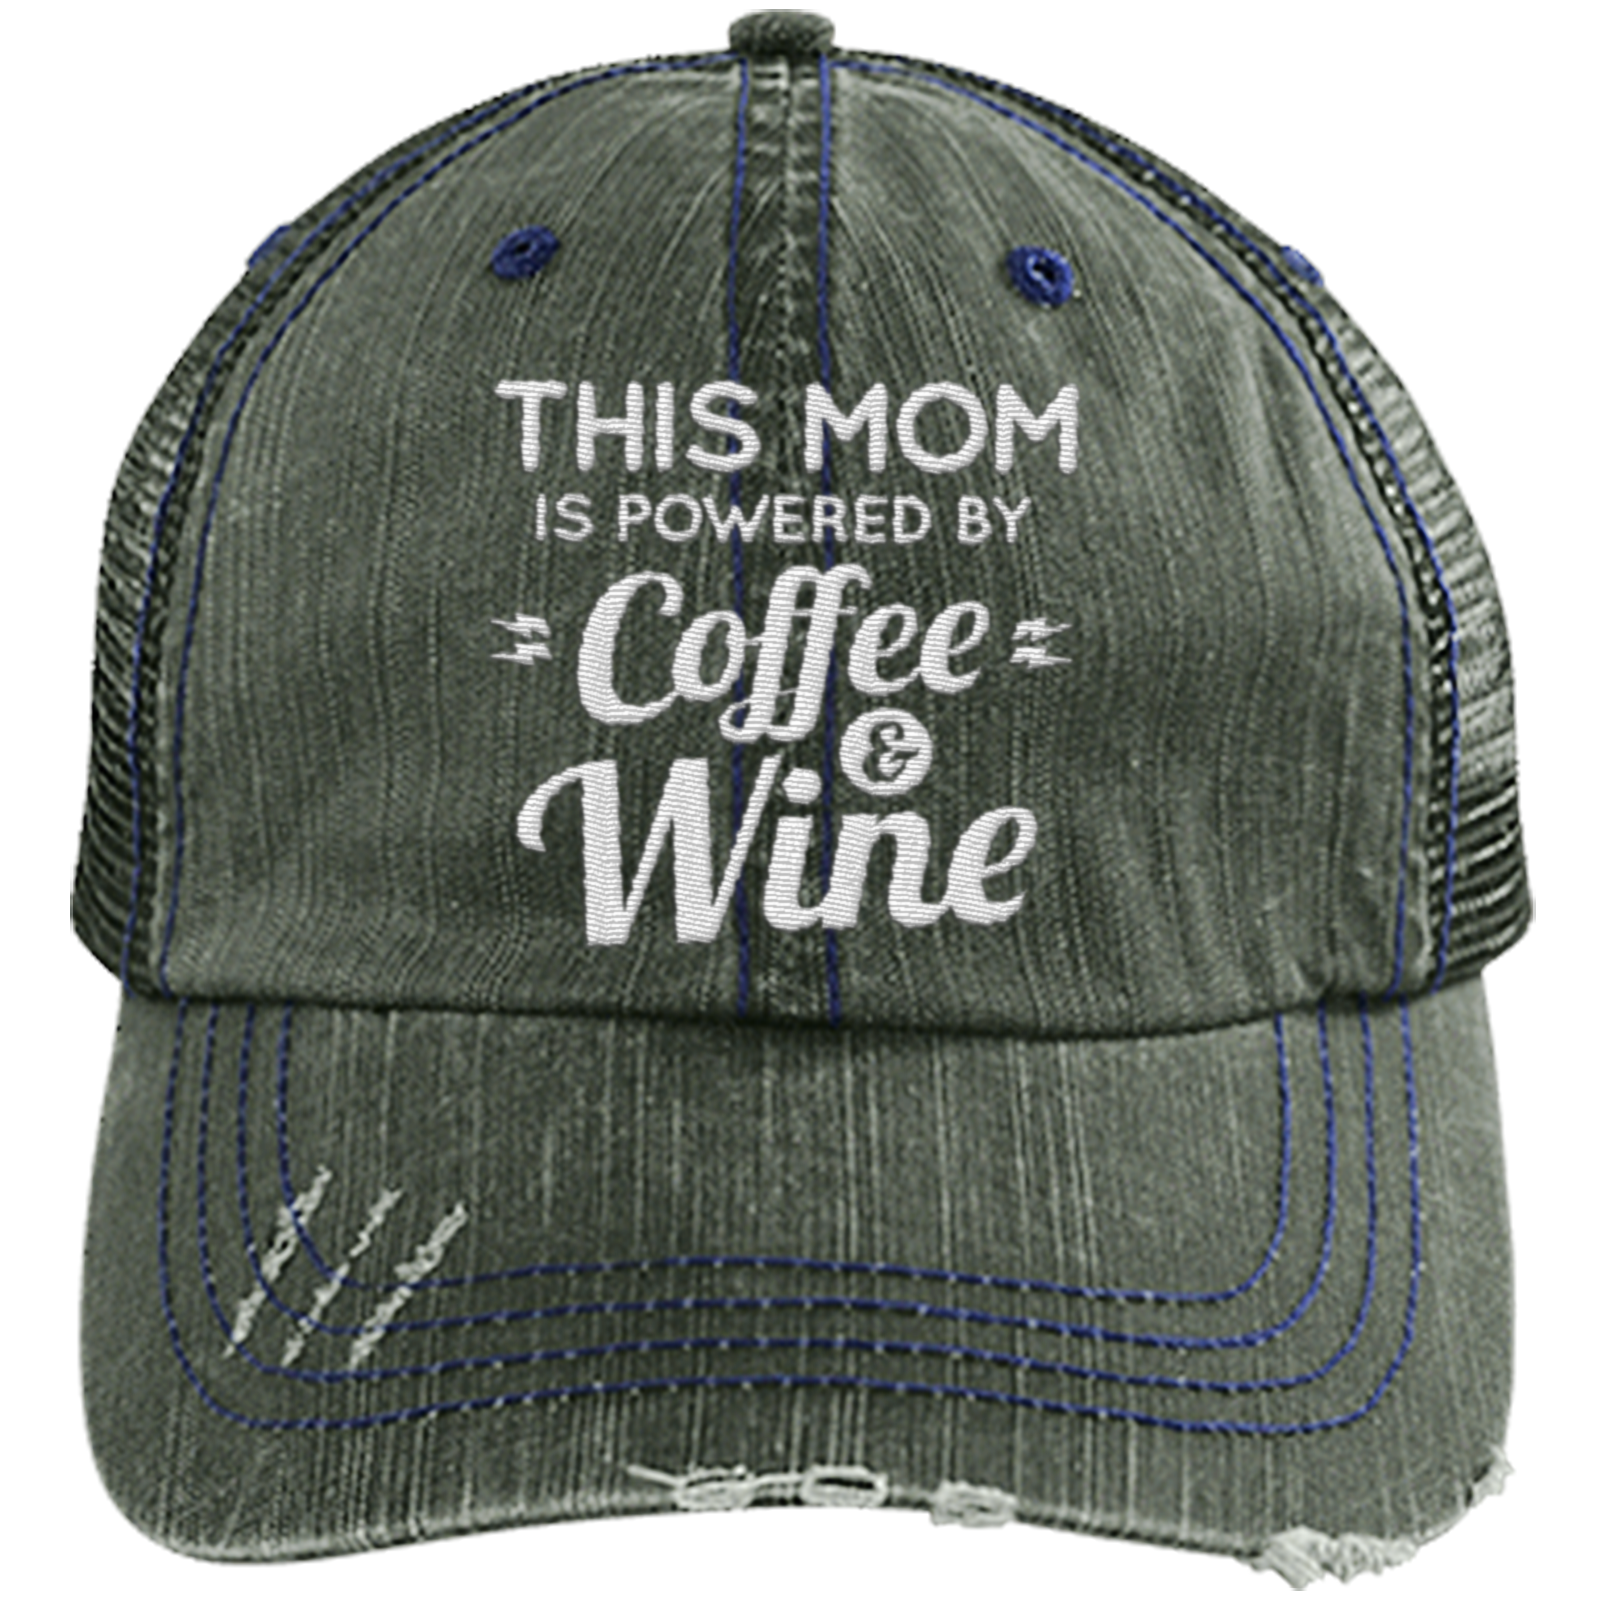 d396c41af6ec2 Mom Powered by Coffee and Wine - Distressed Trucker Cap (Mesh Back ...